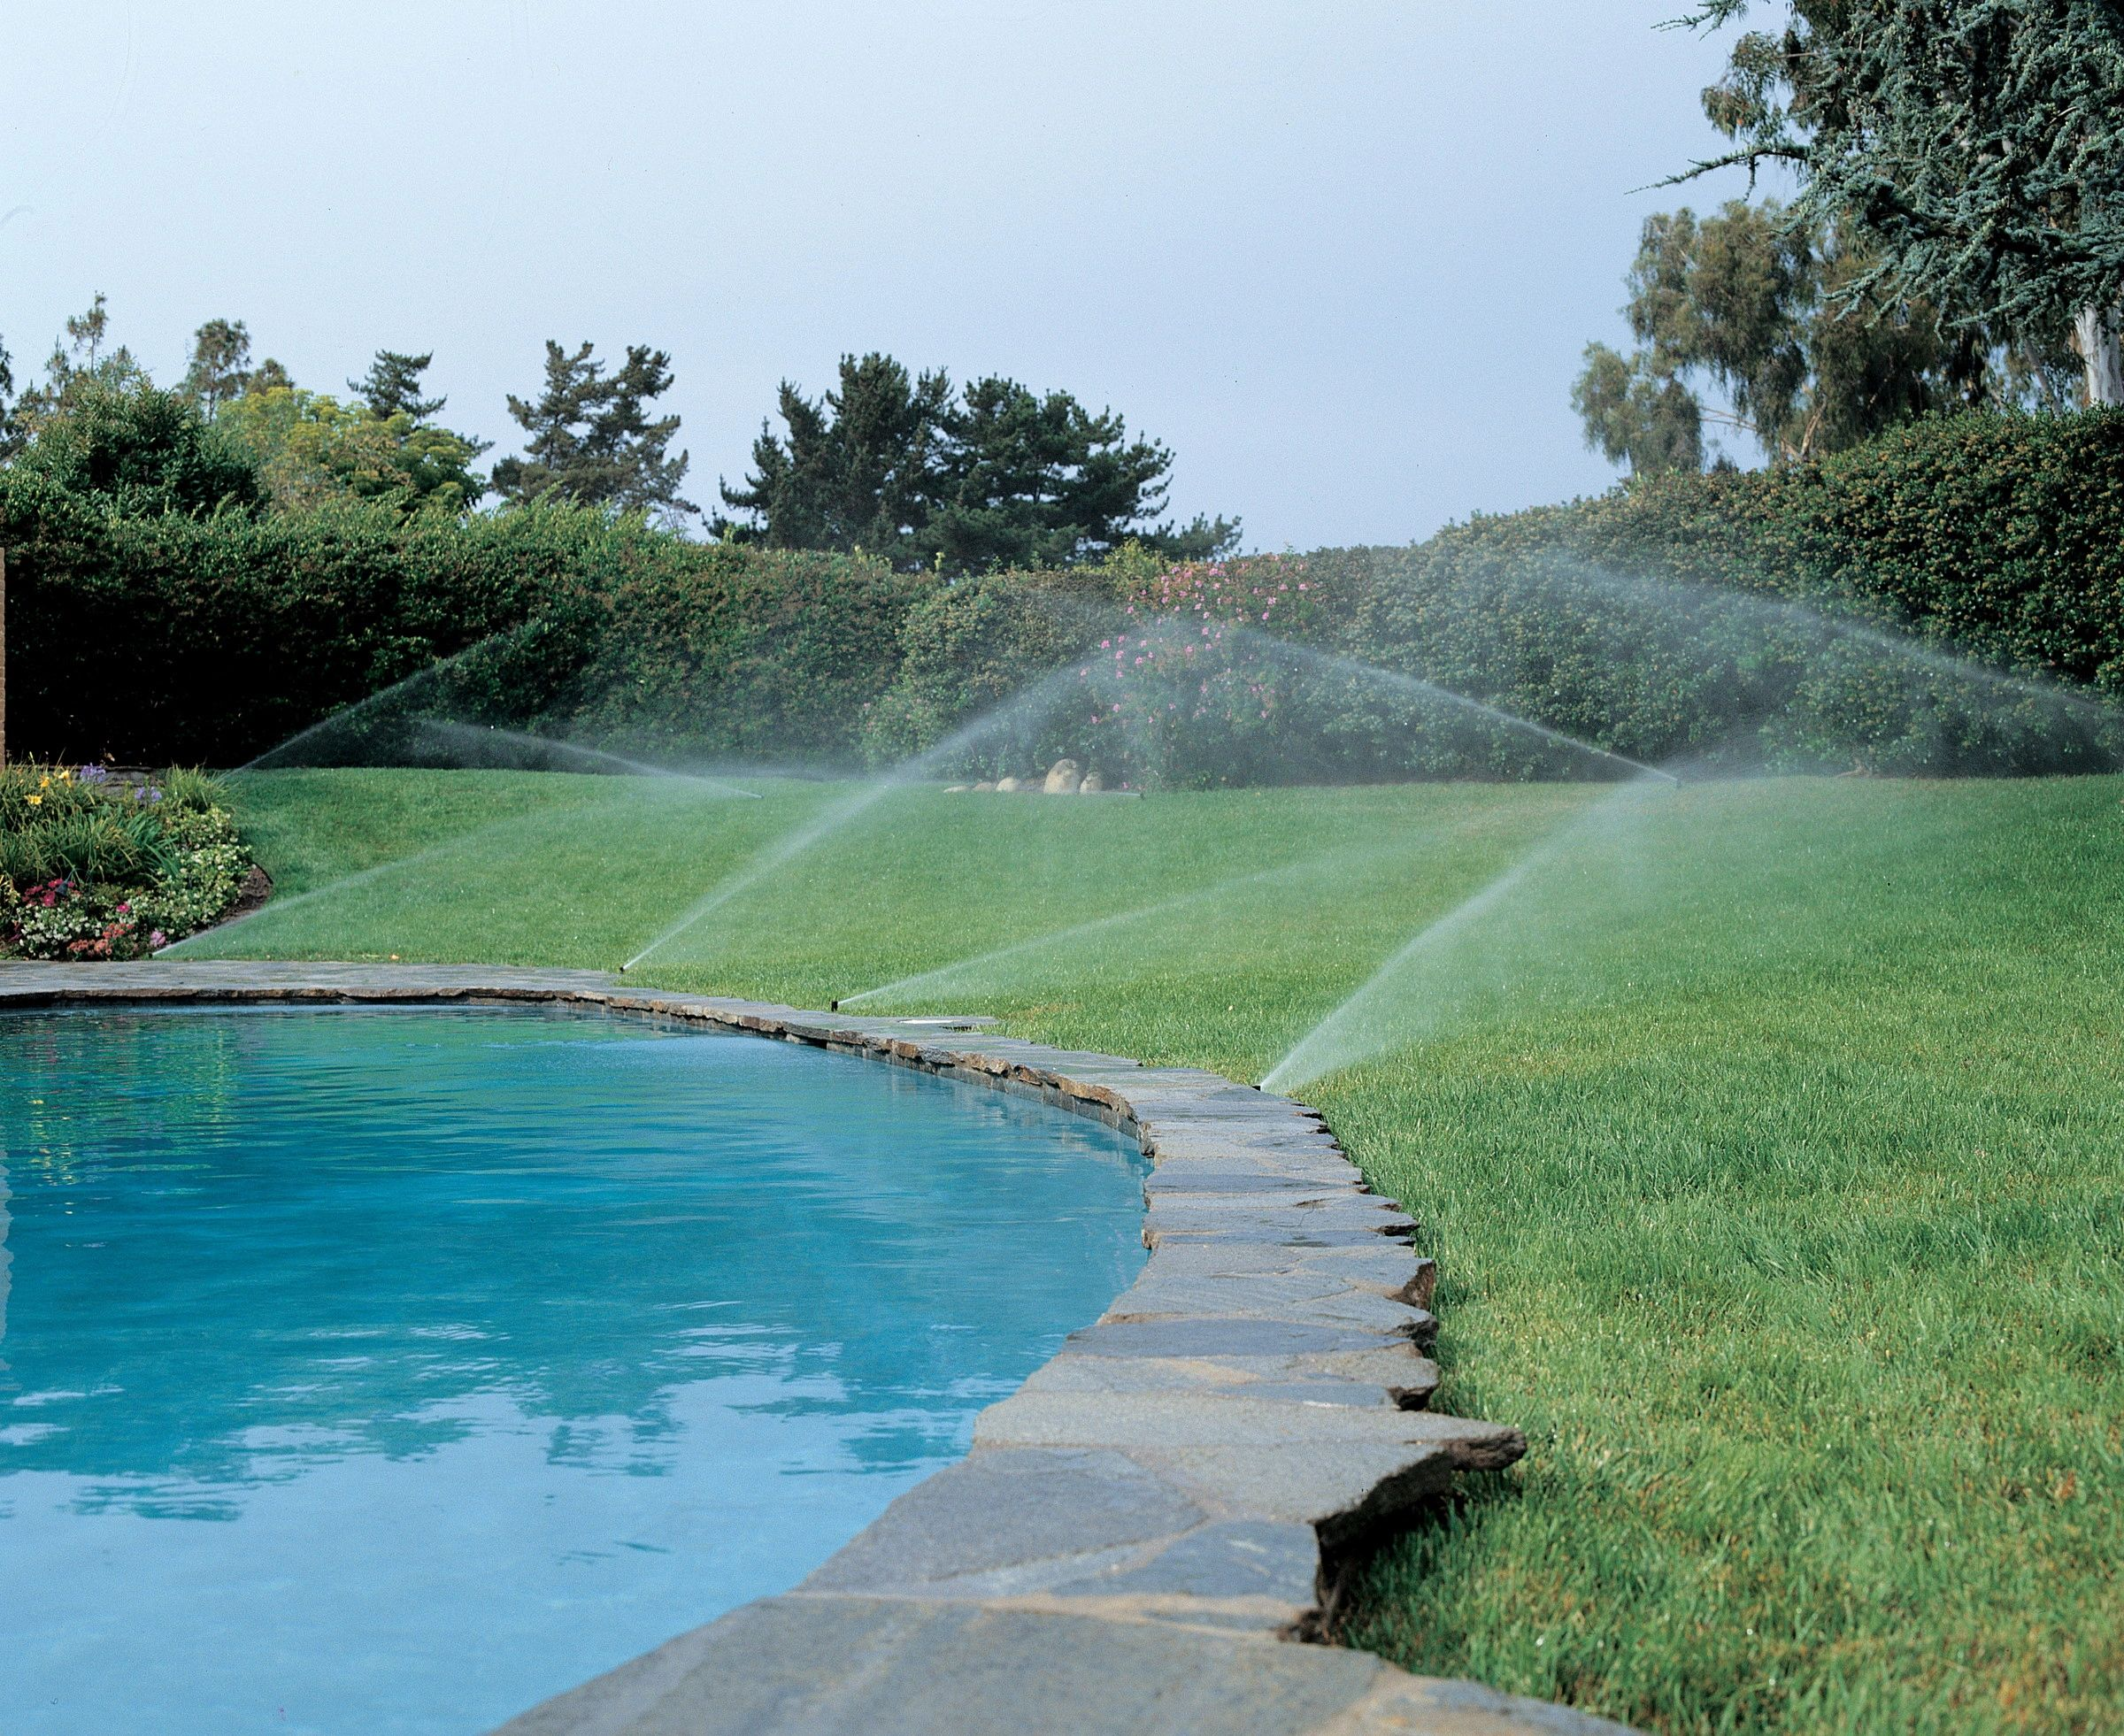 lawn sprinkler repair, broken sprinkler head, broken sprinkler pipe, sprinkler valve repair